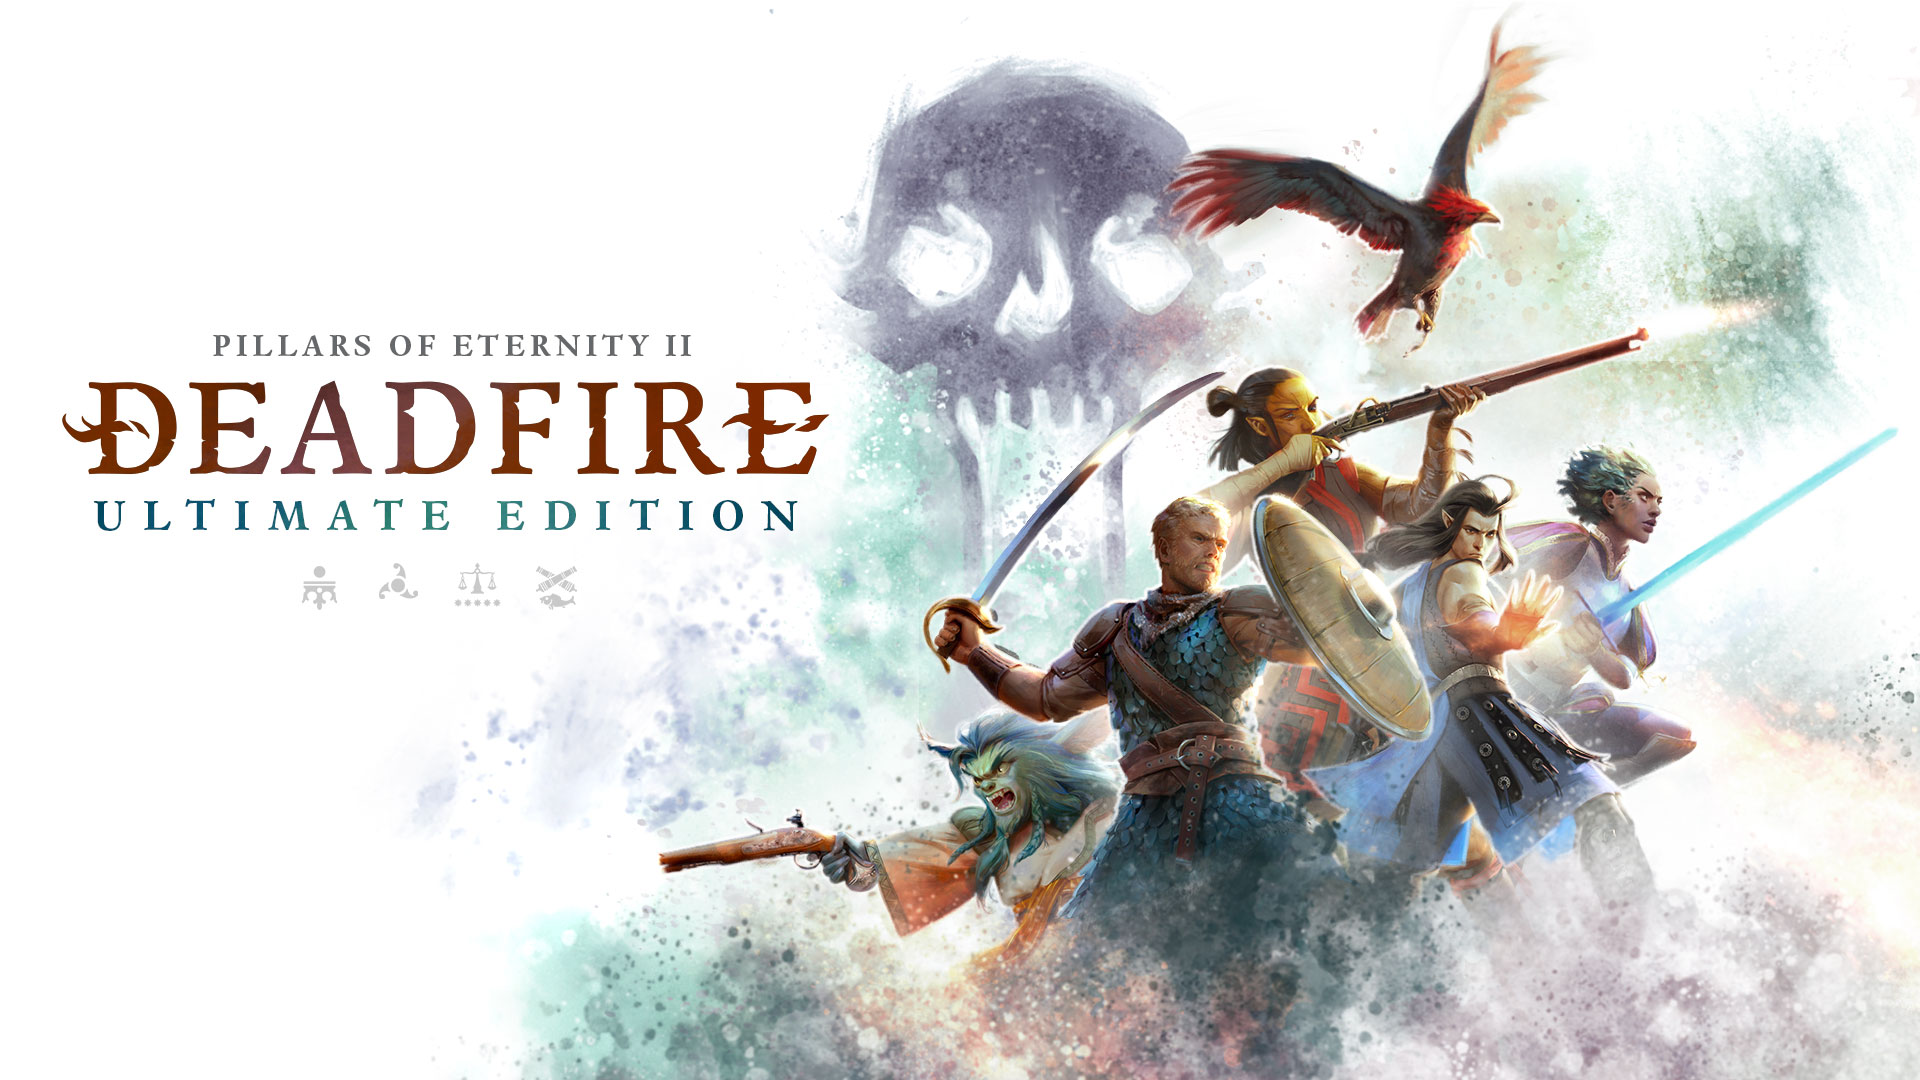 Pillars of Eternity II: Deadfire – Ultimate Edition Available Now on PlayStation 4 and Xbox One